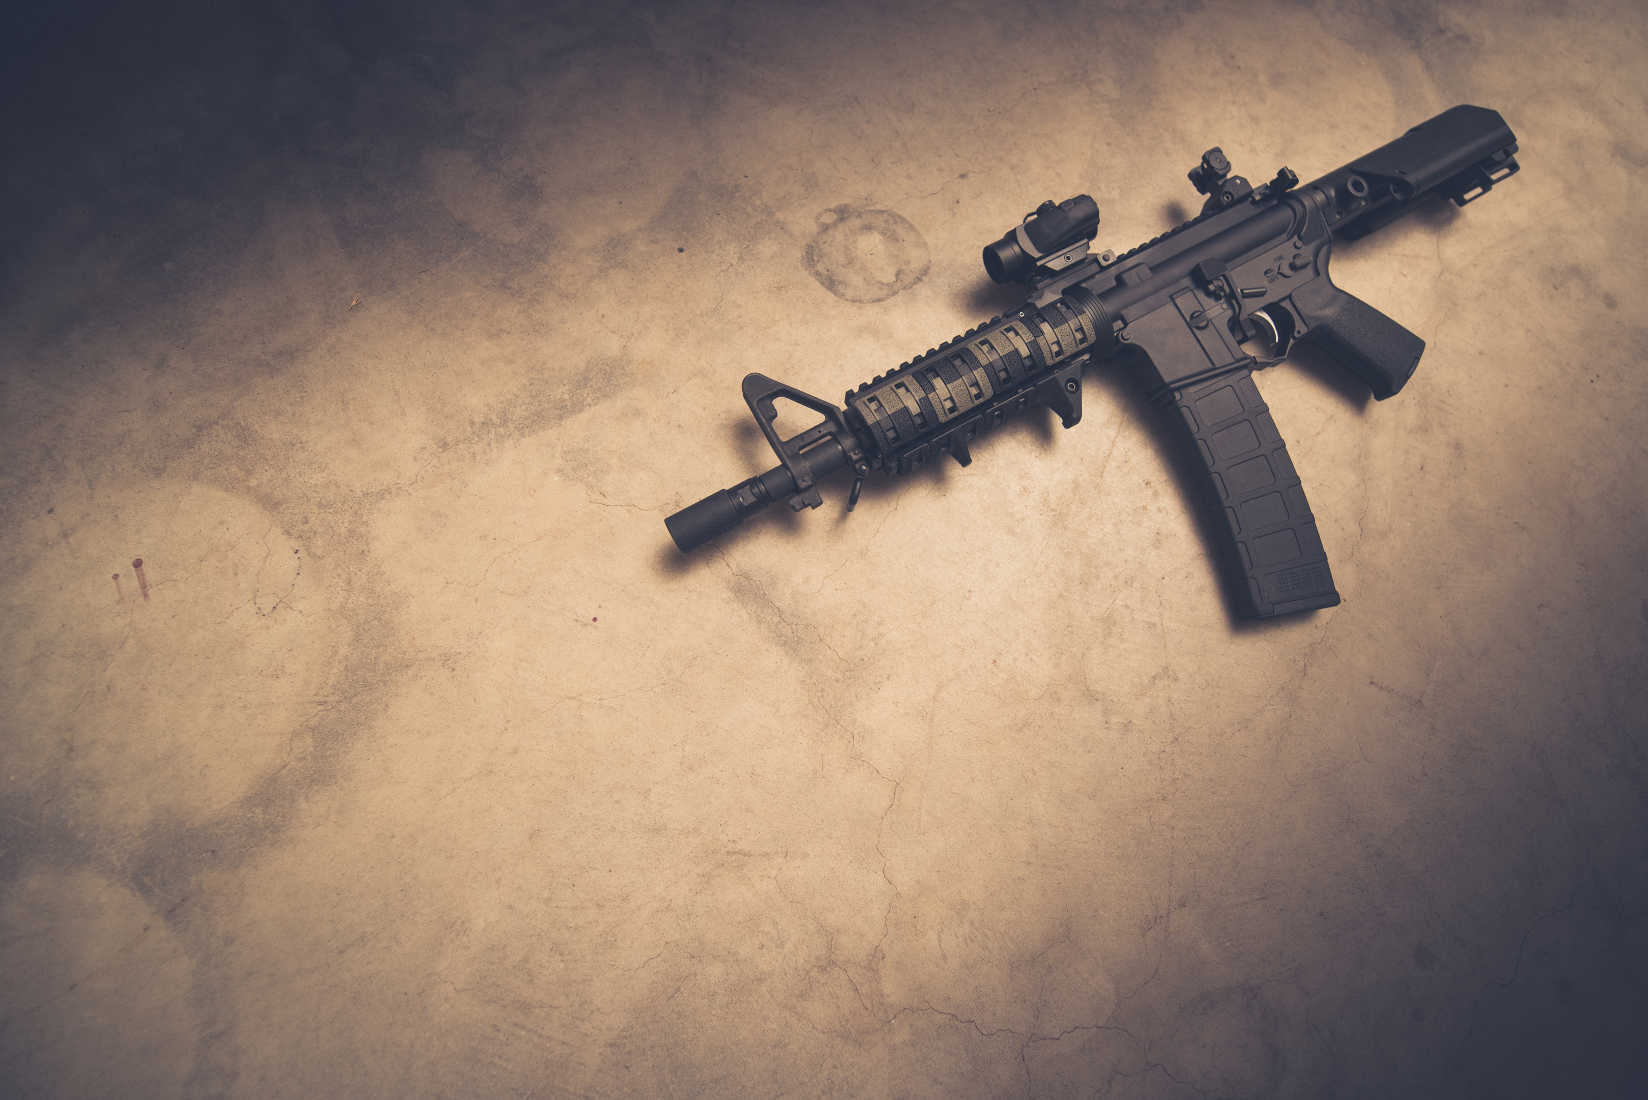 Merriam-Webster Changes Definition of 'Assault Rifle' to Fit Gun Control Talking Points